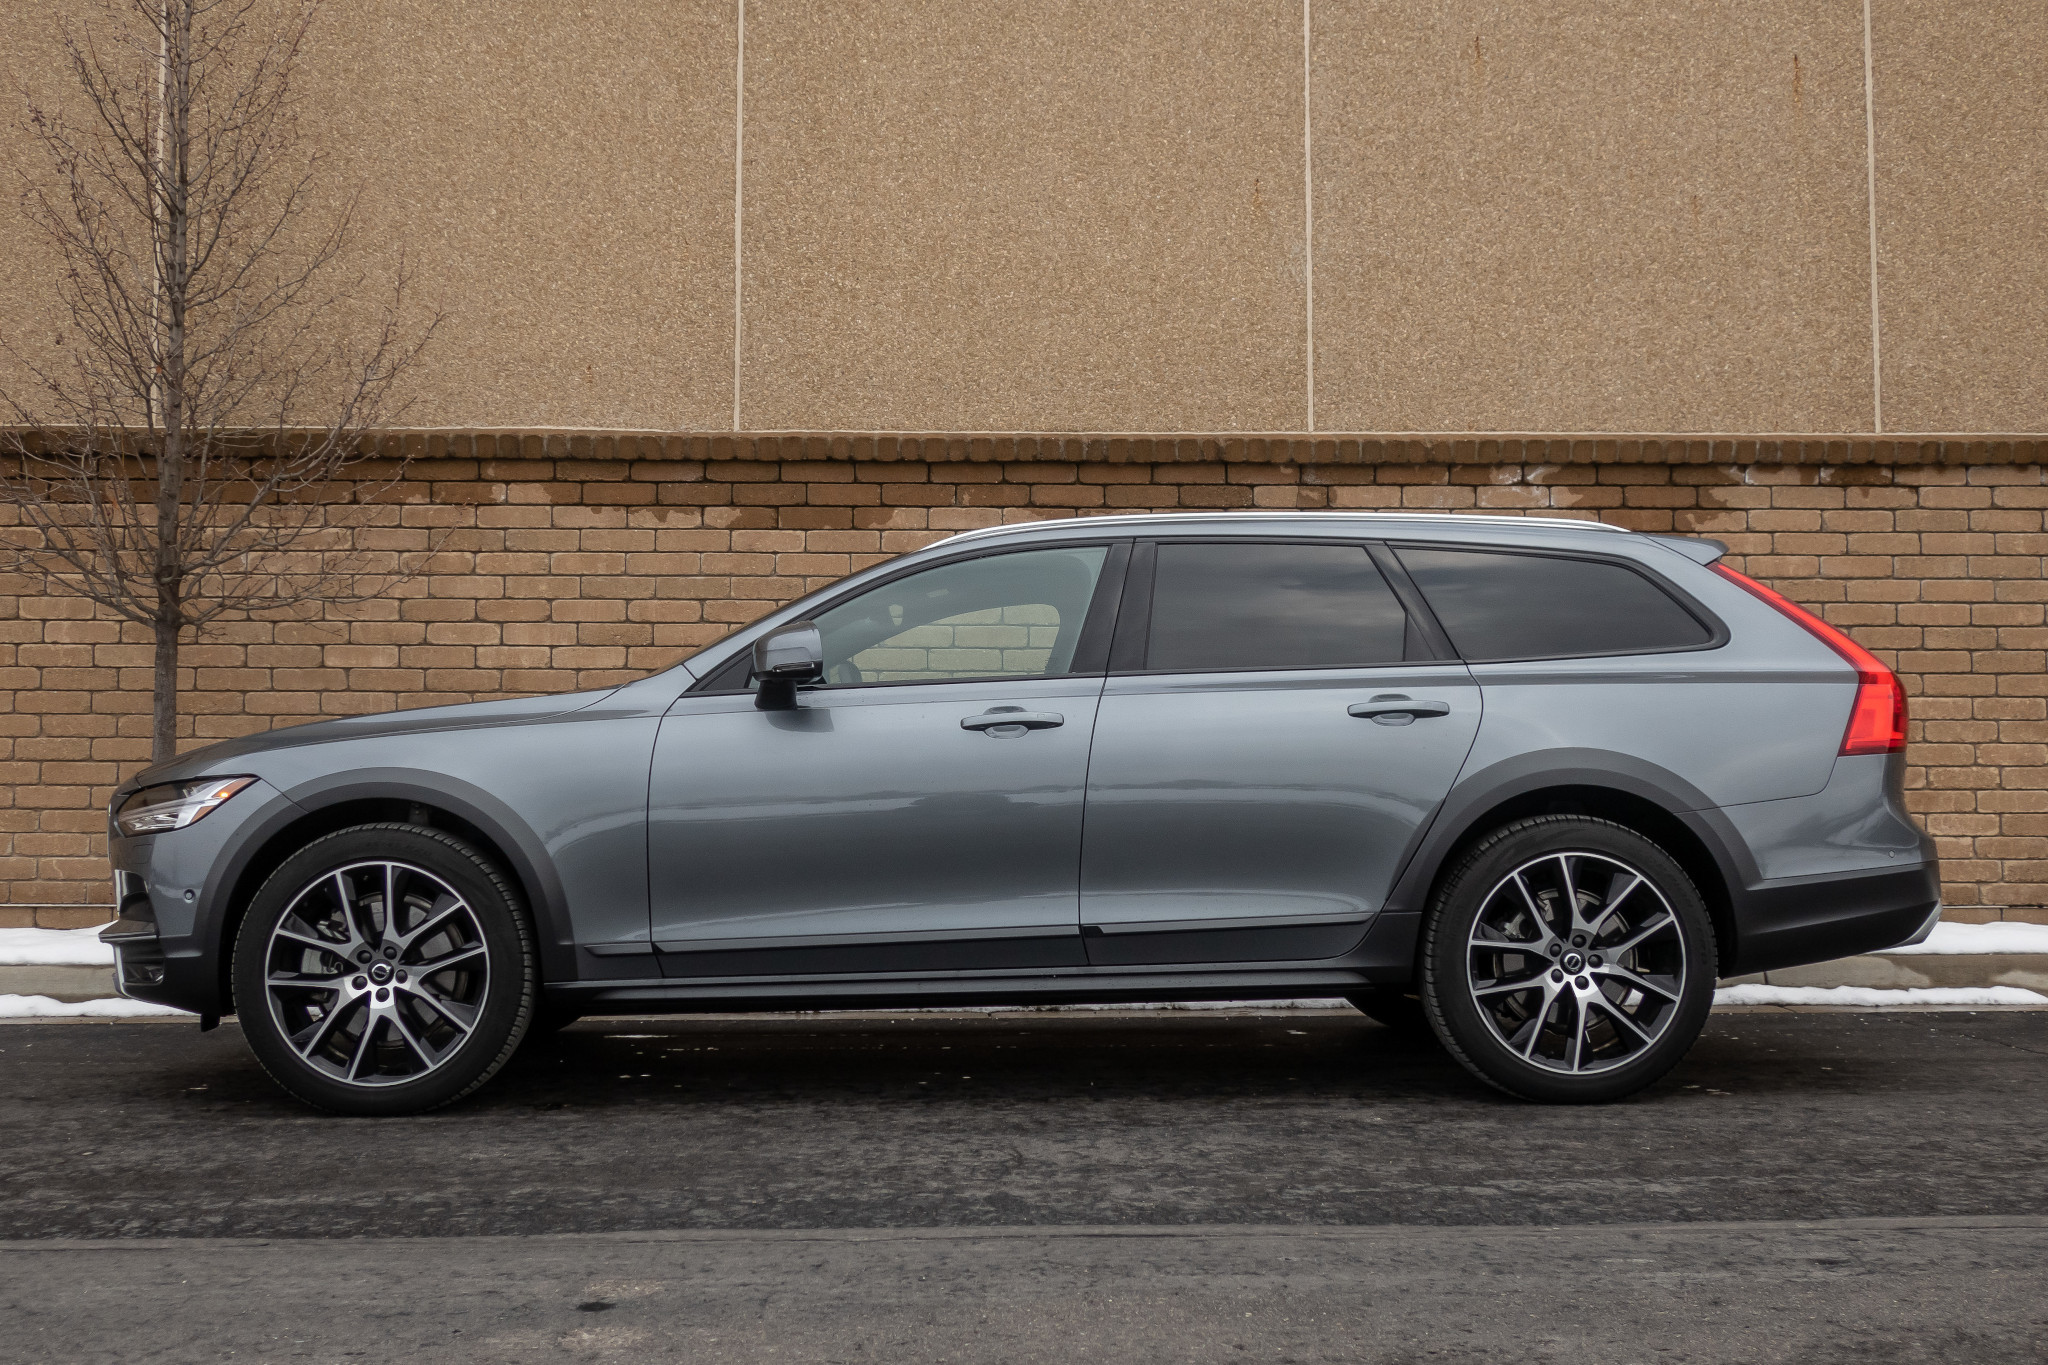 2020 Volvo V90 Cross Country: 6 Things We Like (and 4 Not So Much)